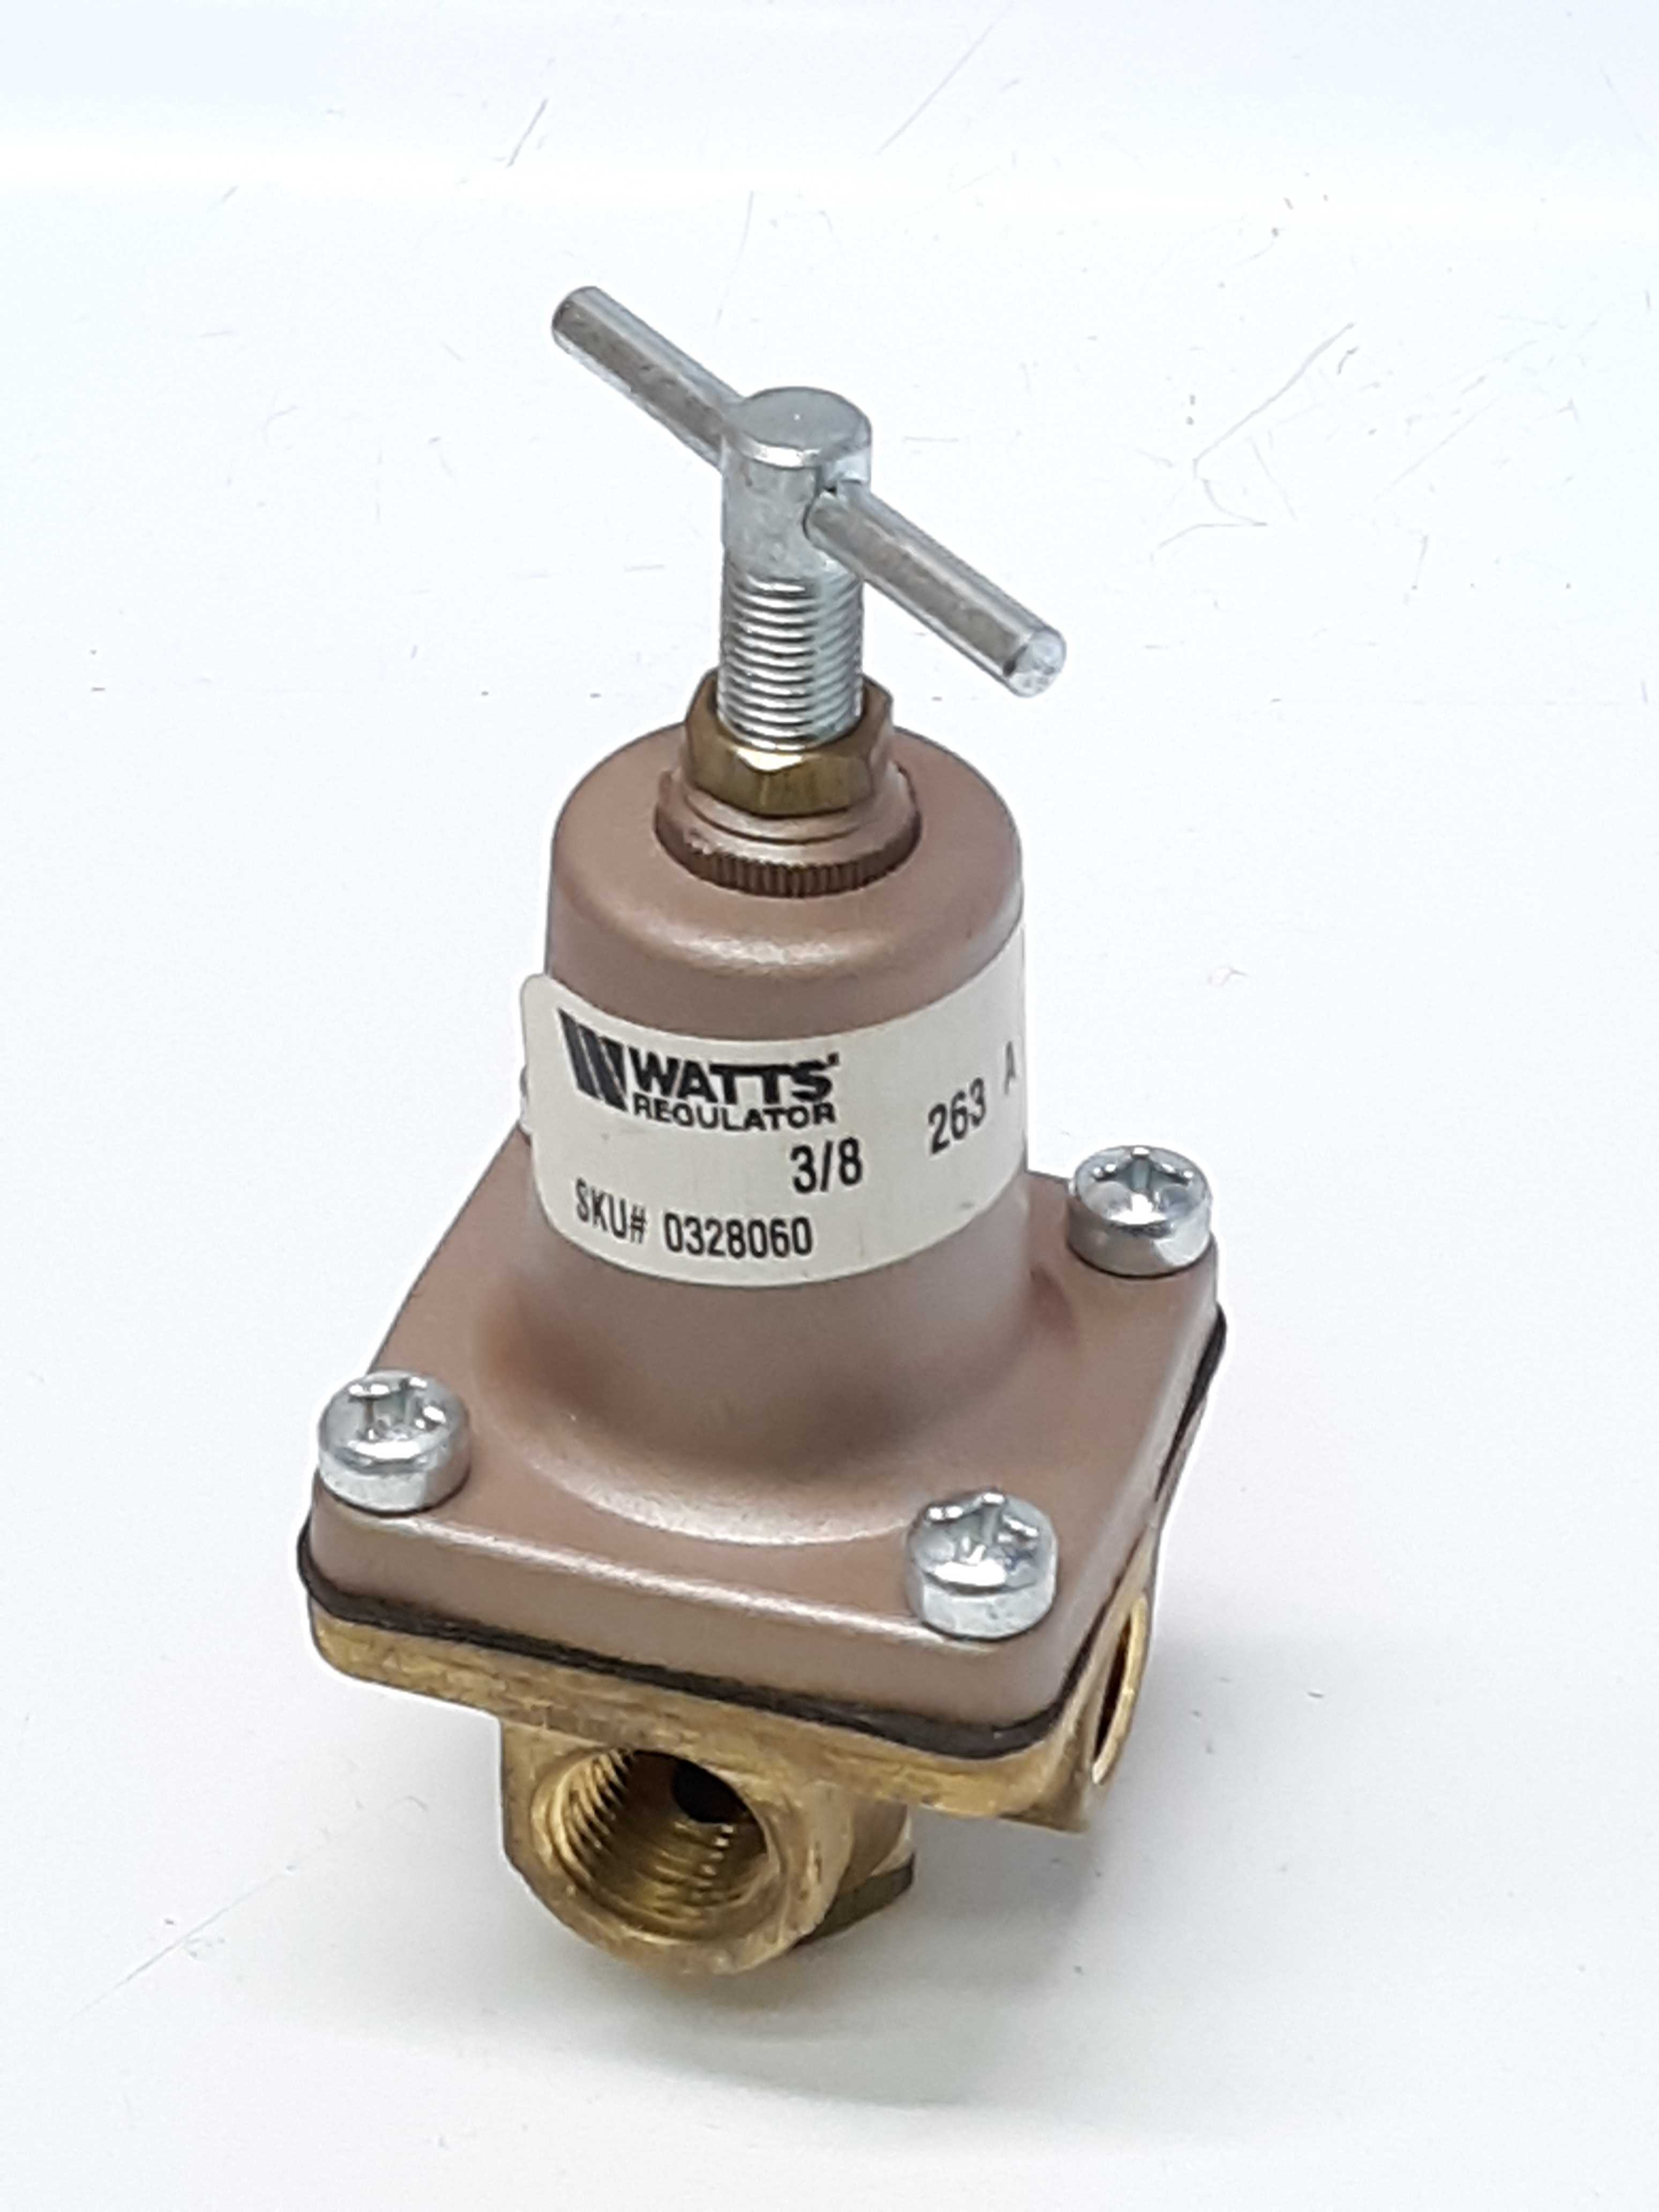 Watts Regulator 263 A 10125 Compact Pressure Regulator 3/8